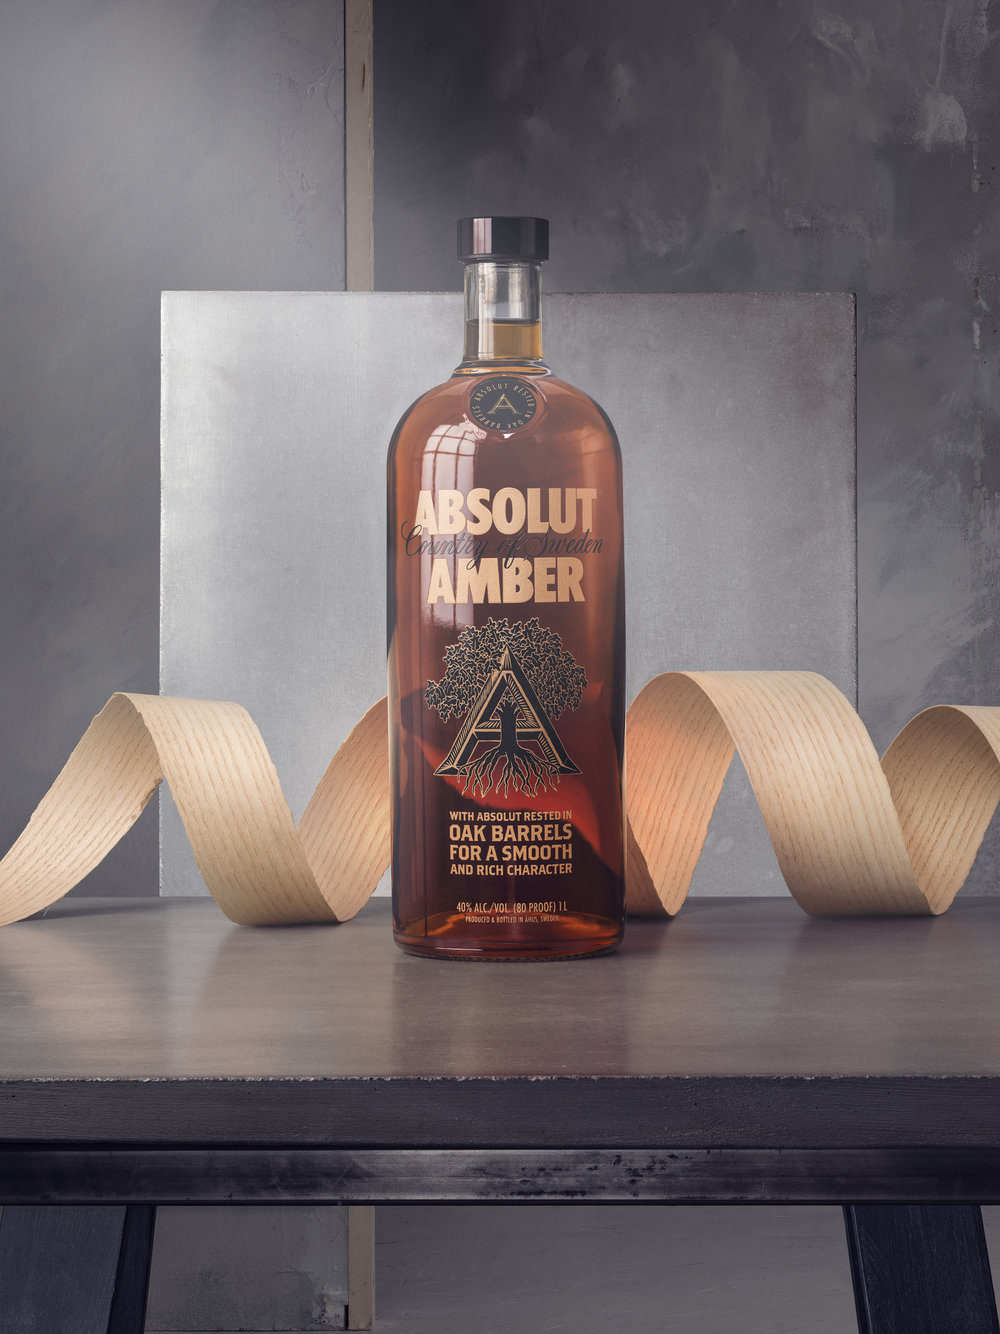 ABSOLUT AMBER / 4 IMAGES